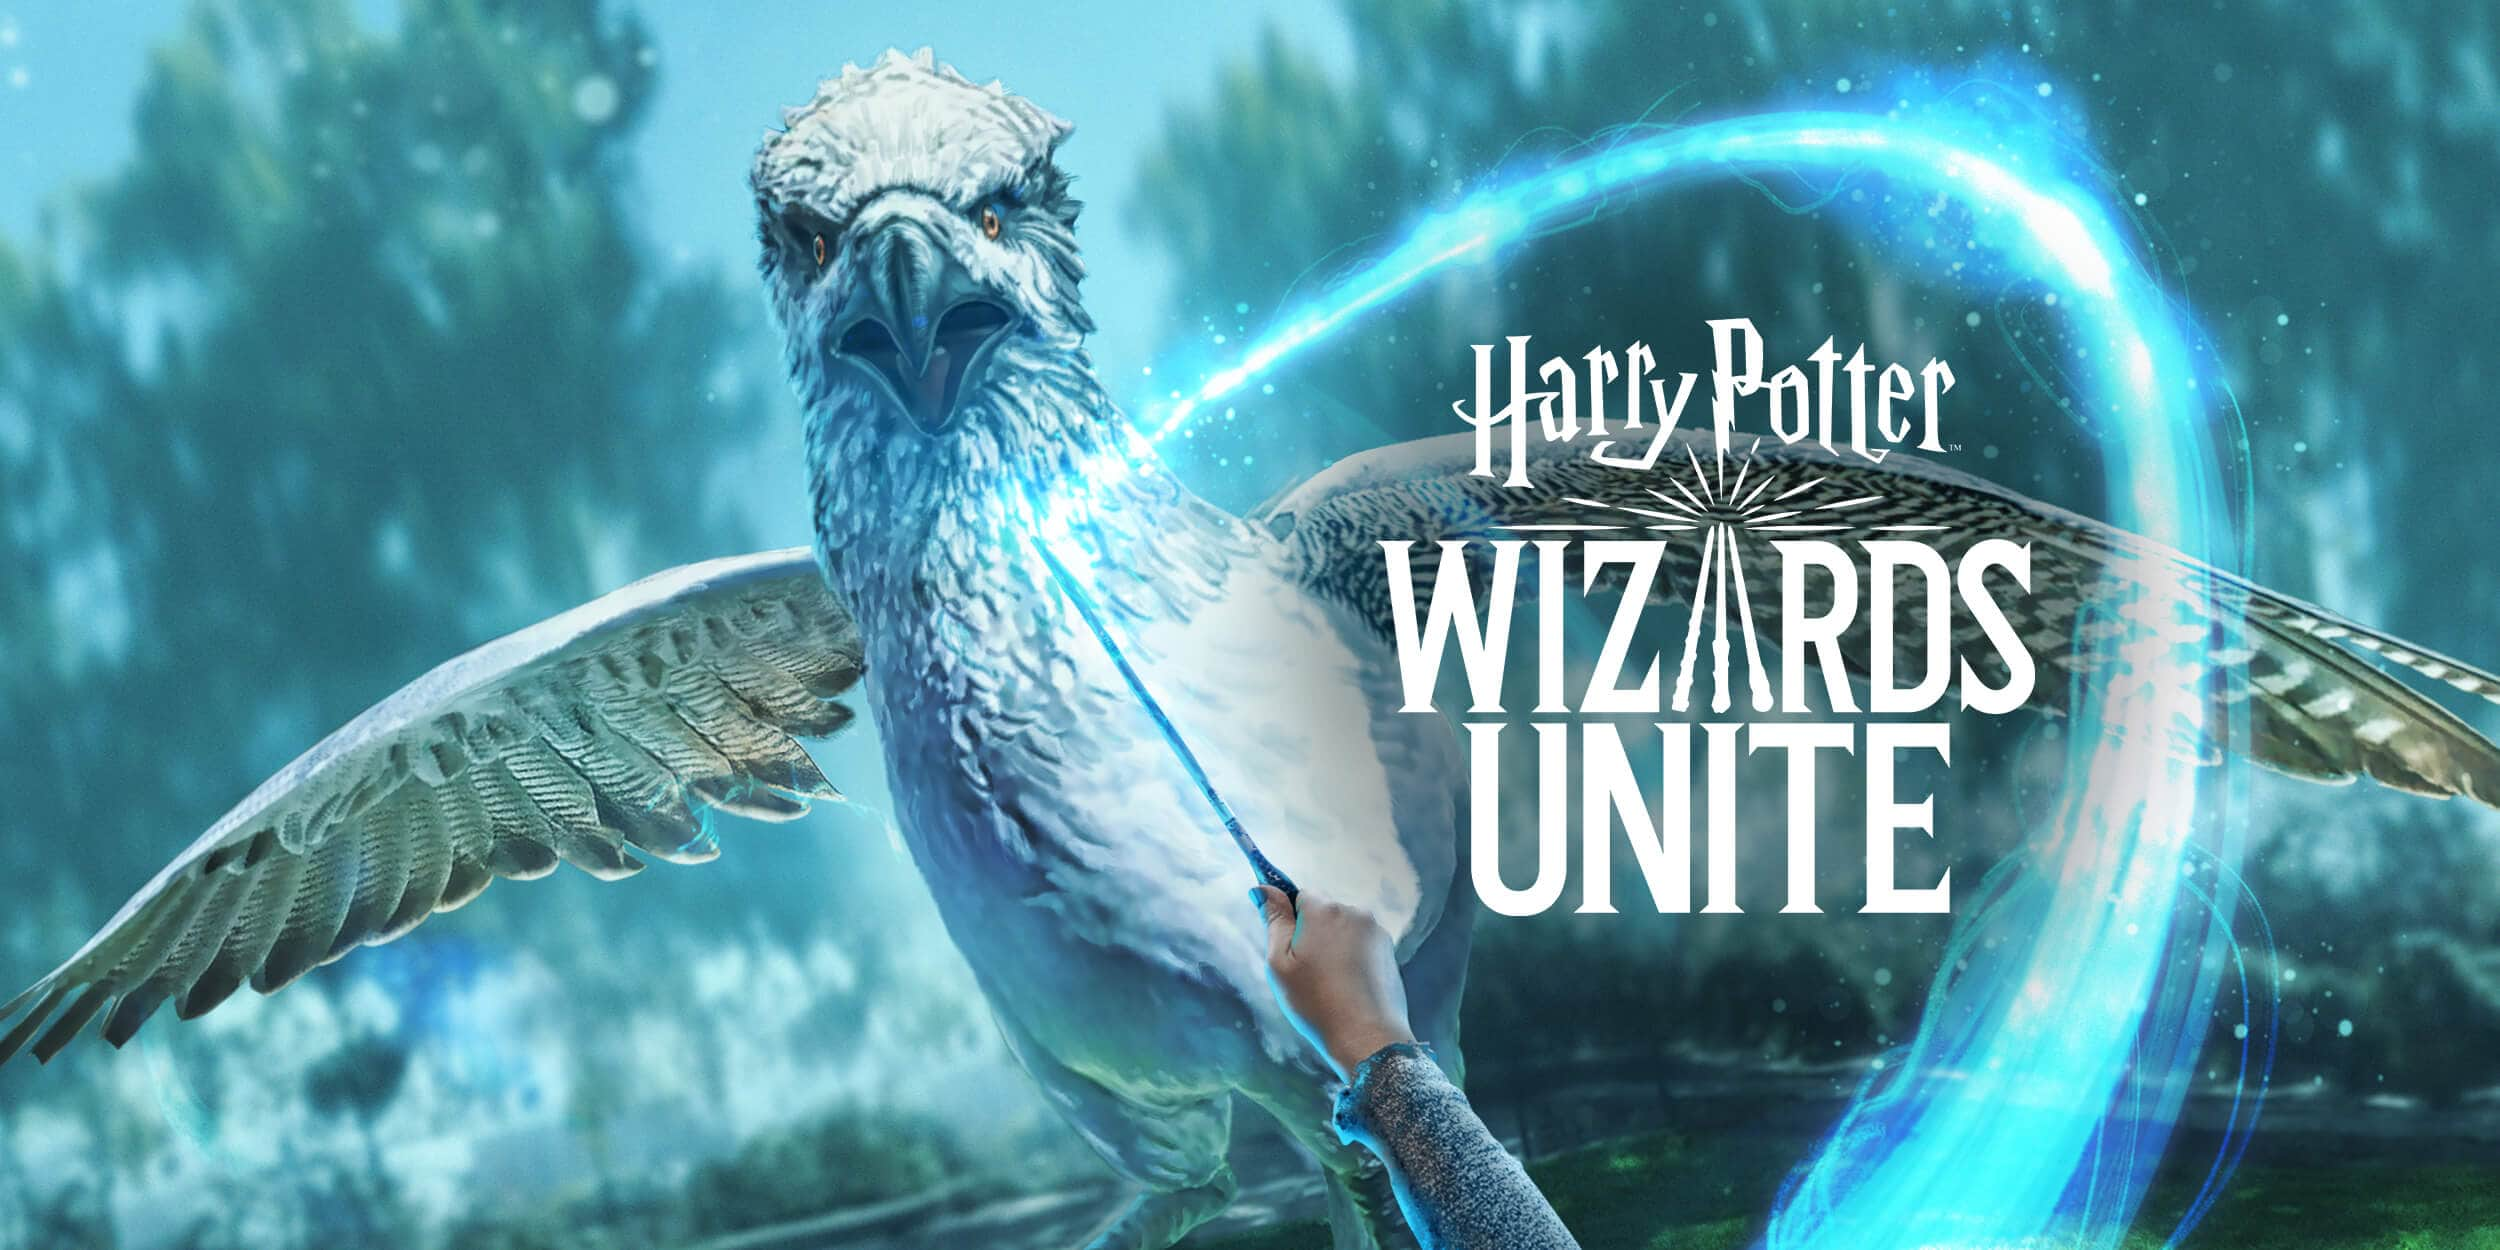 The first AR Harry Potter game promises spell casting in the real world